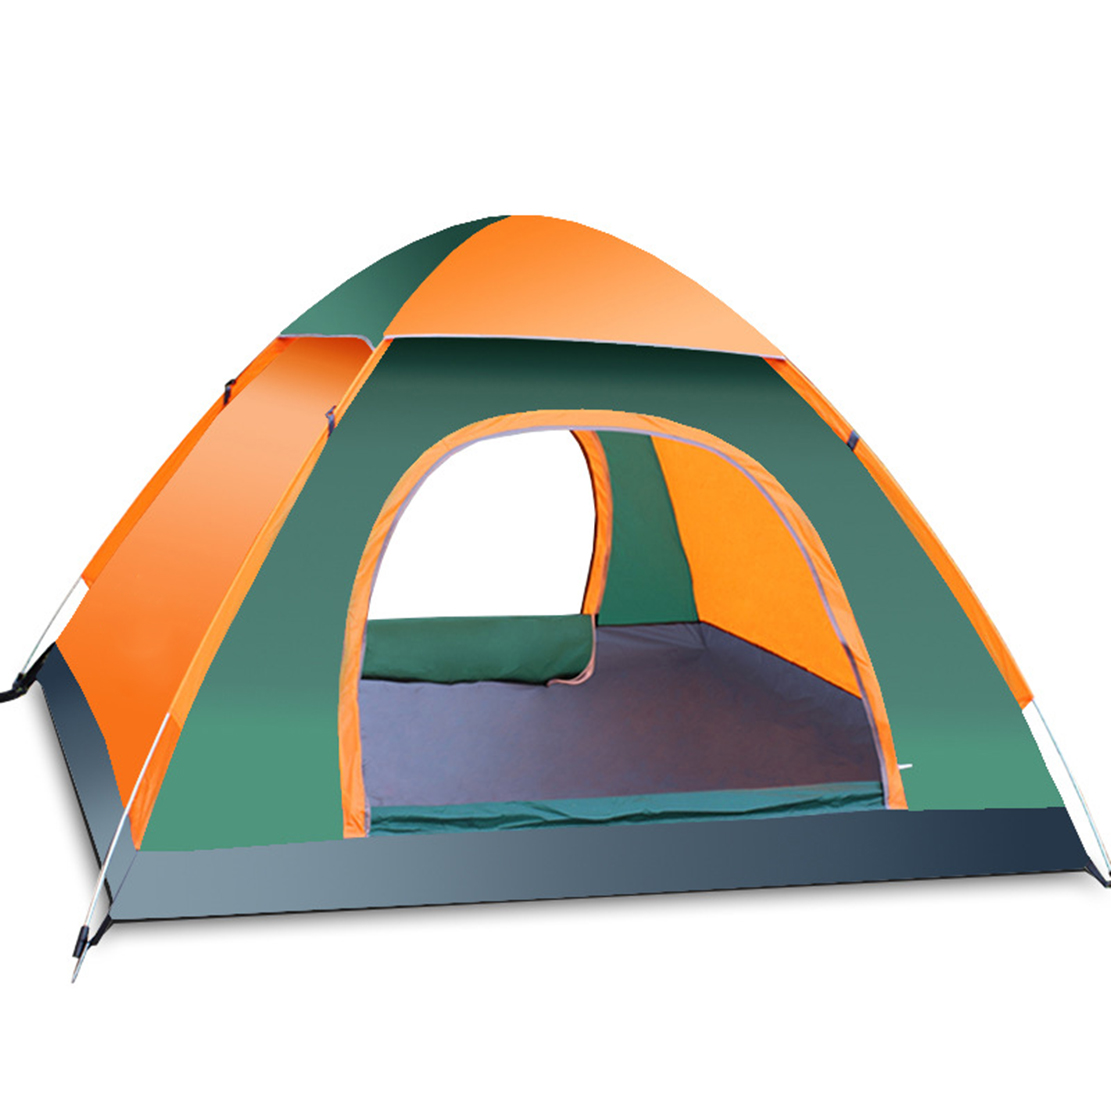 Outdoor Pop Up Camping Tent Automatic 2-4 Person Portable Hiking Pack Waterproof Backpacking Tents ZT9-114 1pcs urinal gogirl go girl woman urination device 9 5cm stand up pee fud camping travel portable female tiolet